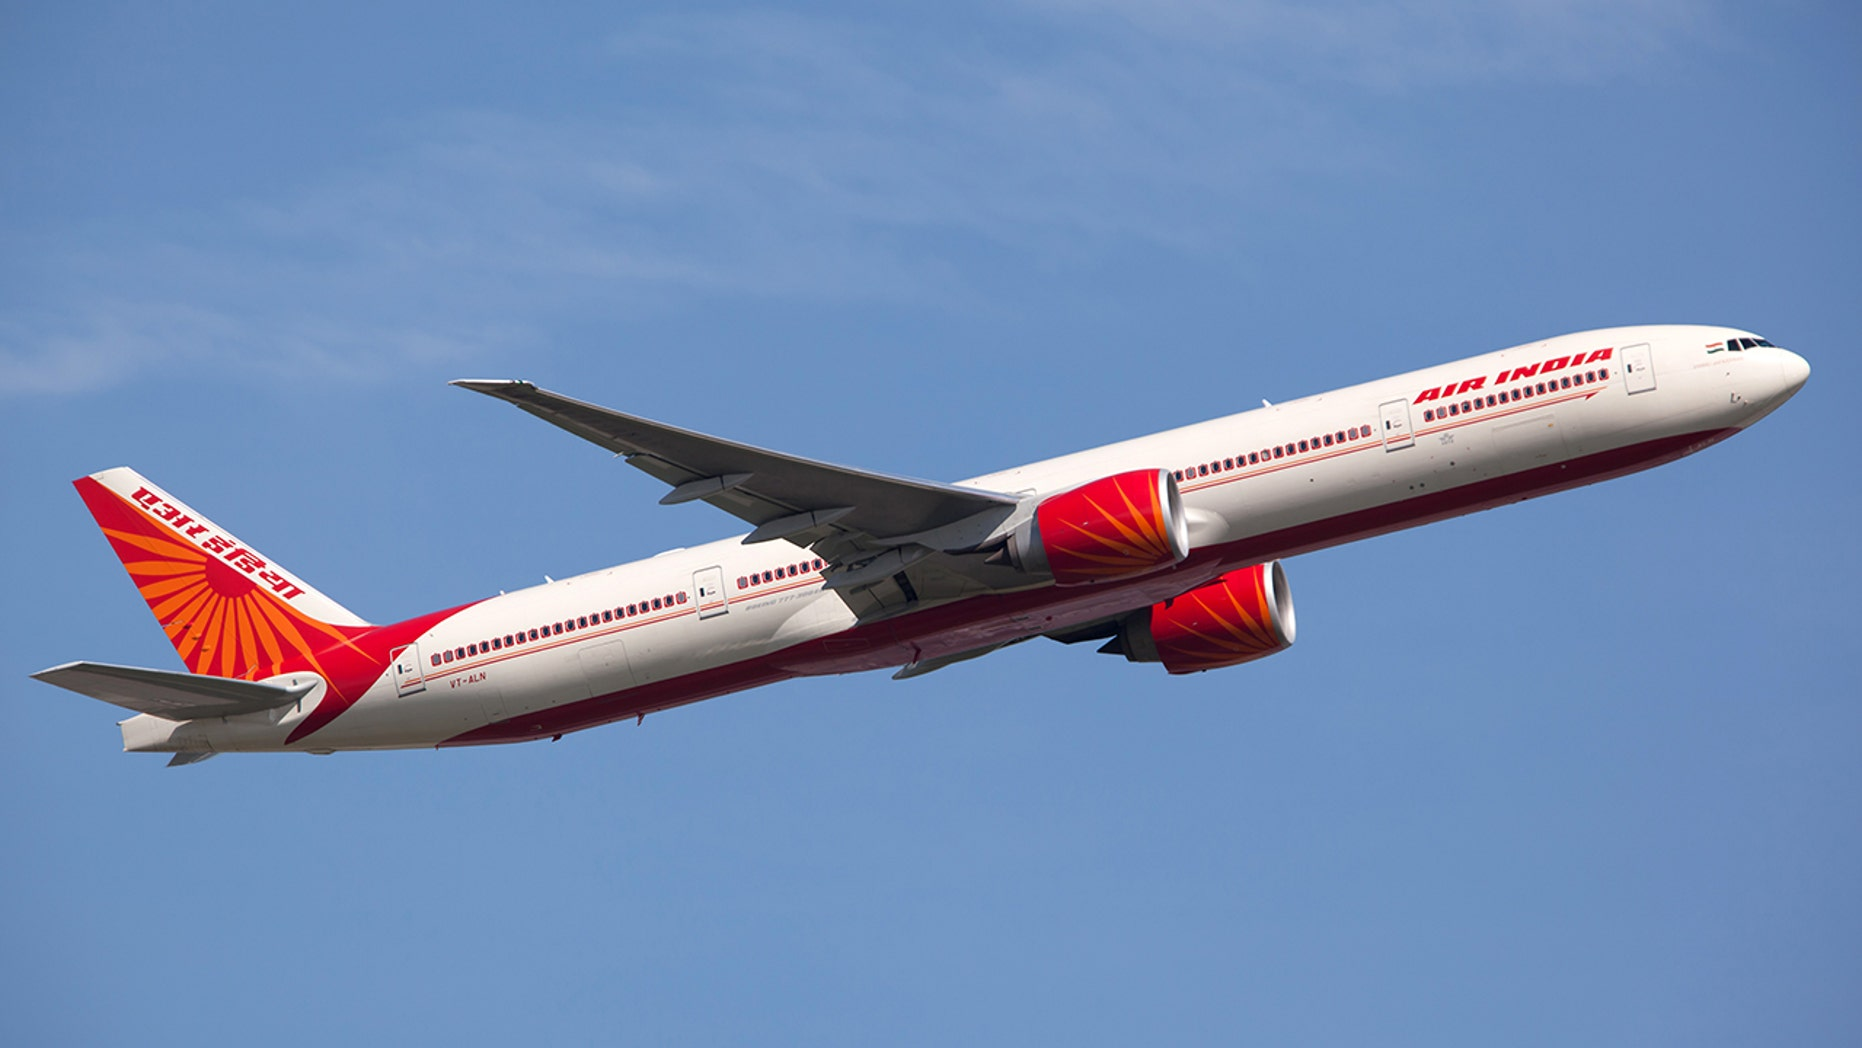 An Air India plane suffered damage after smashing into a wall during takeoff